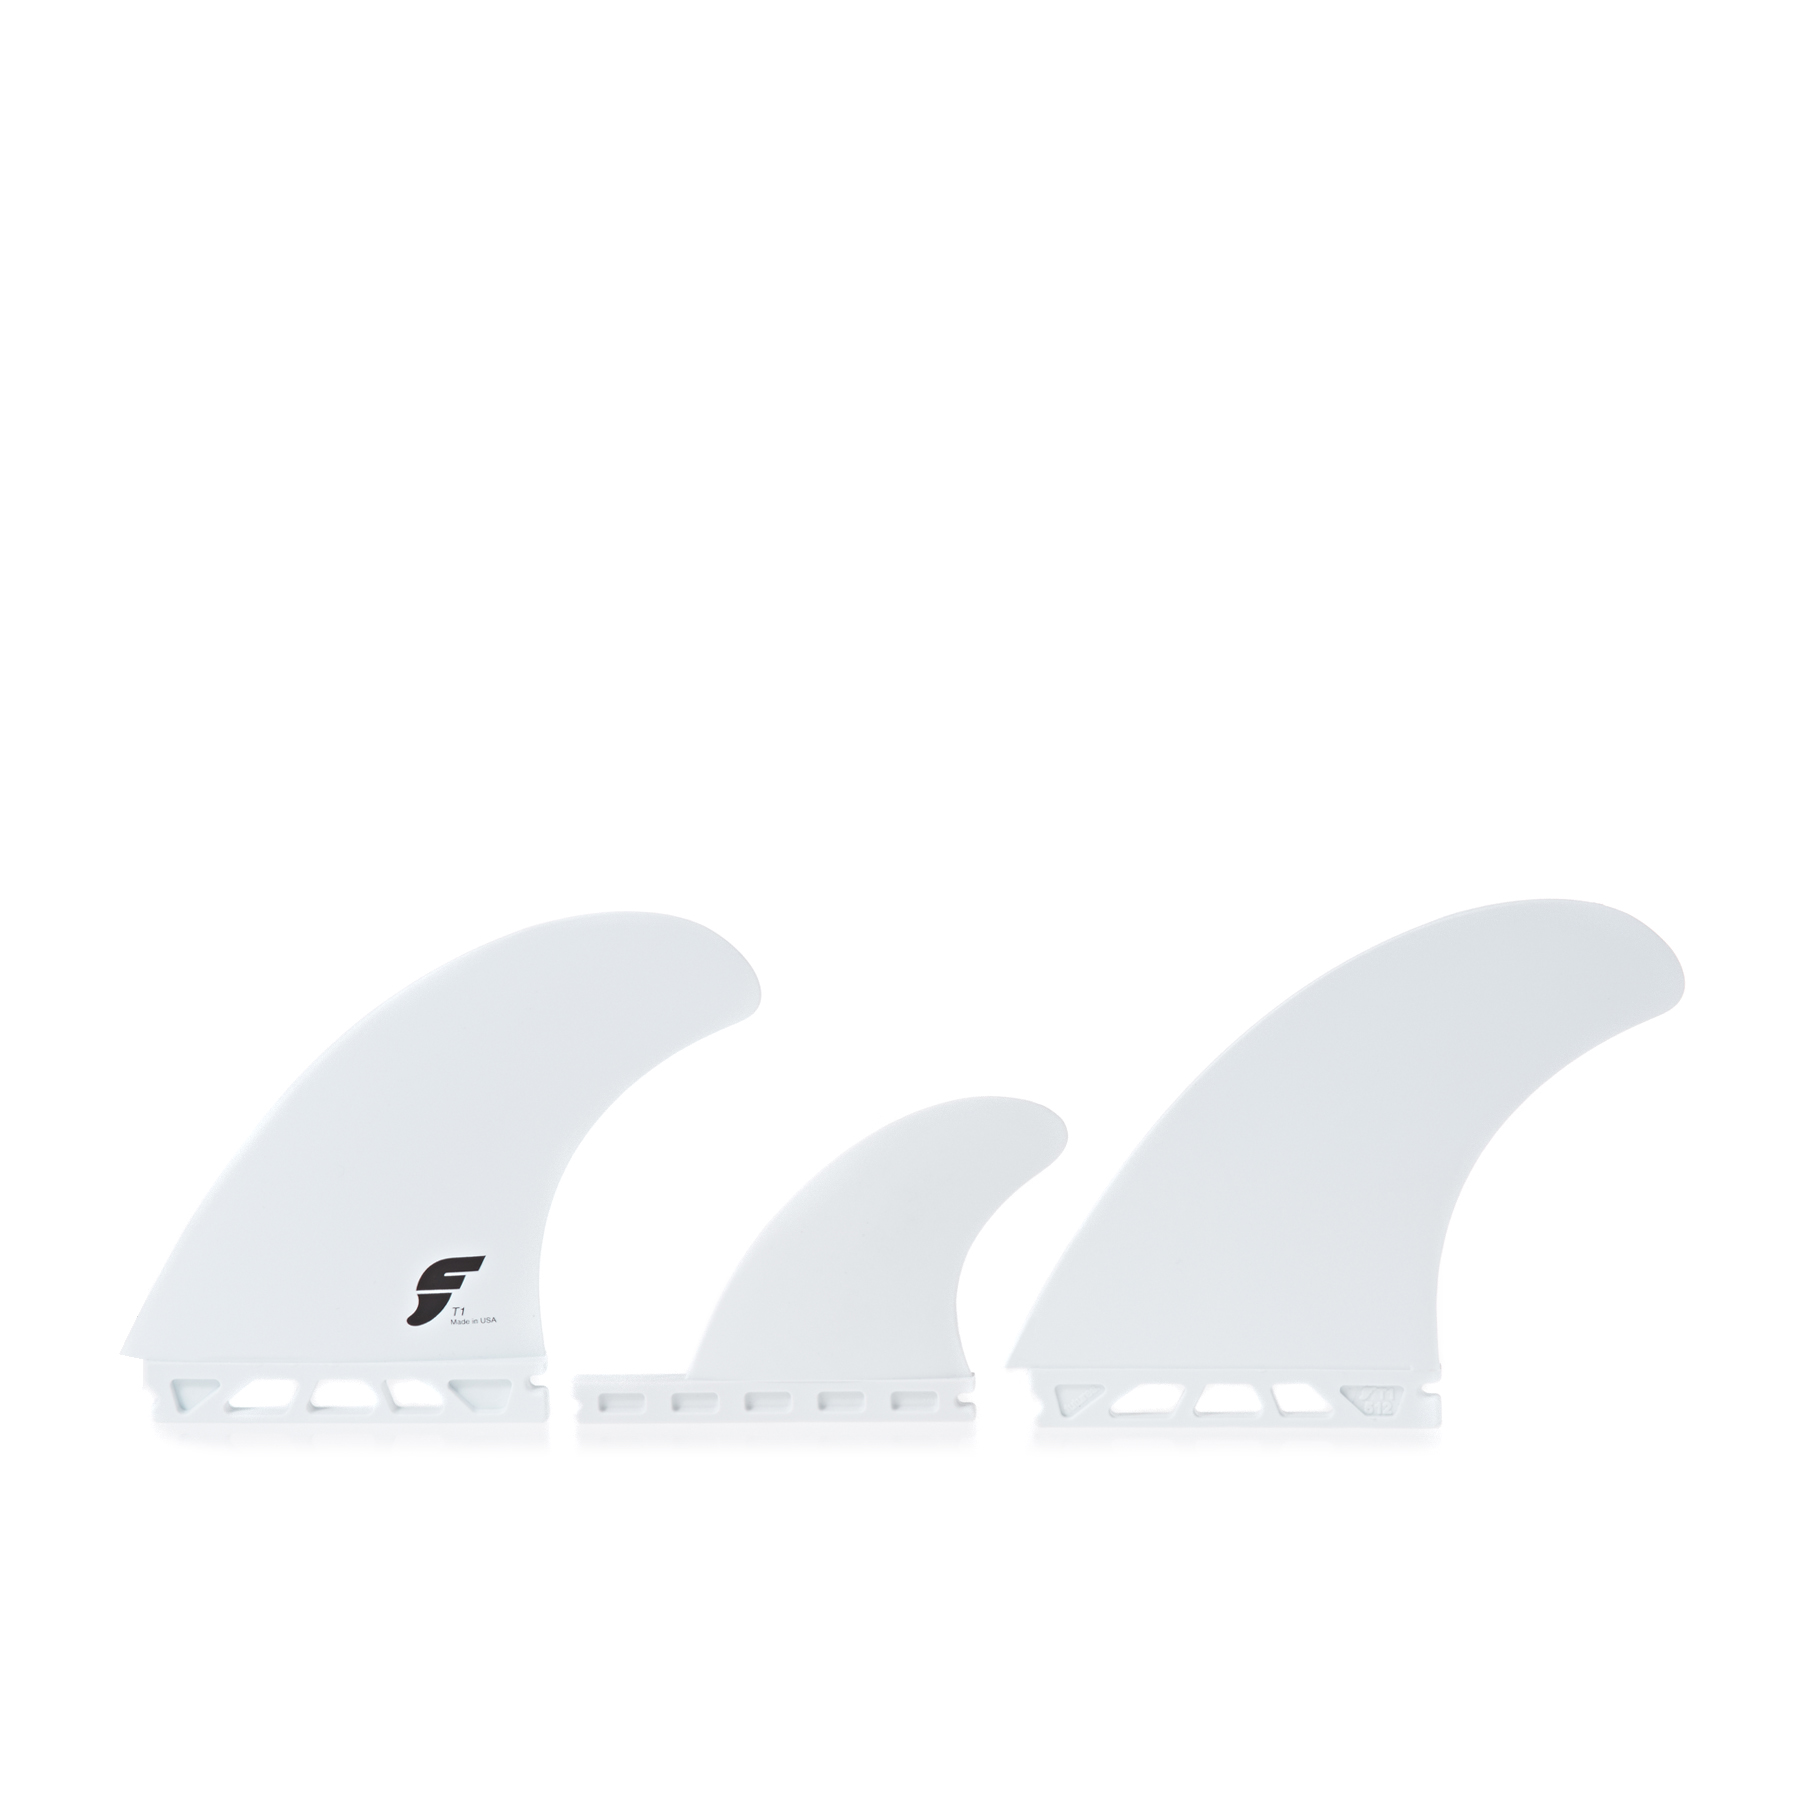 Futures Fins Thermotech QD2 Quad Rears Surfboard Fins 3.75 model